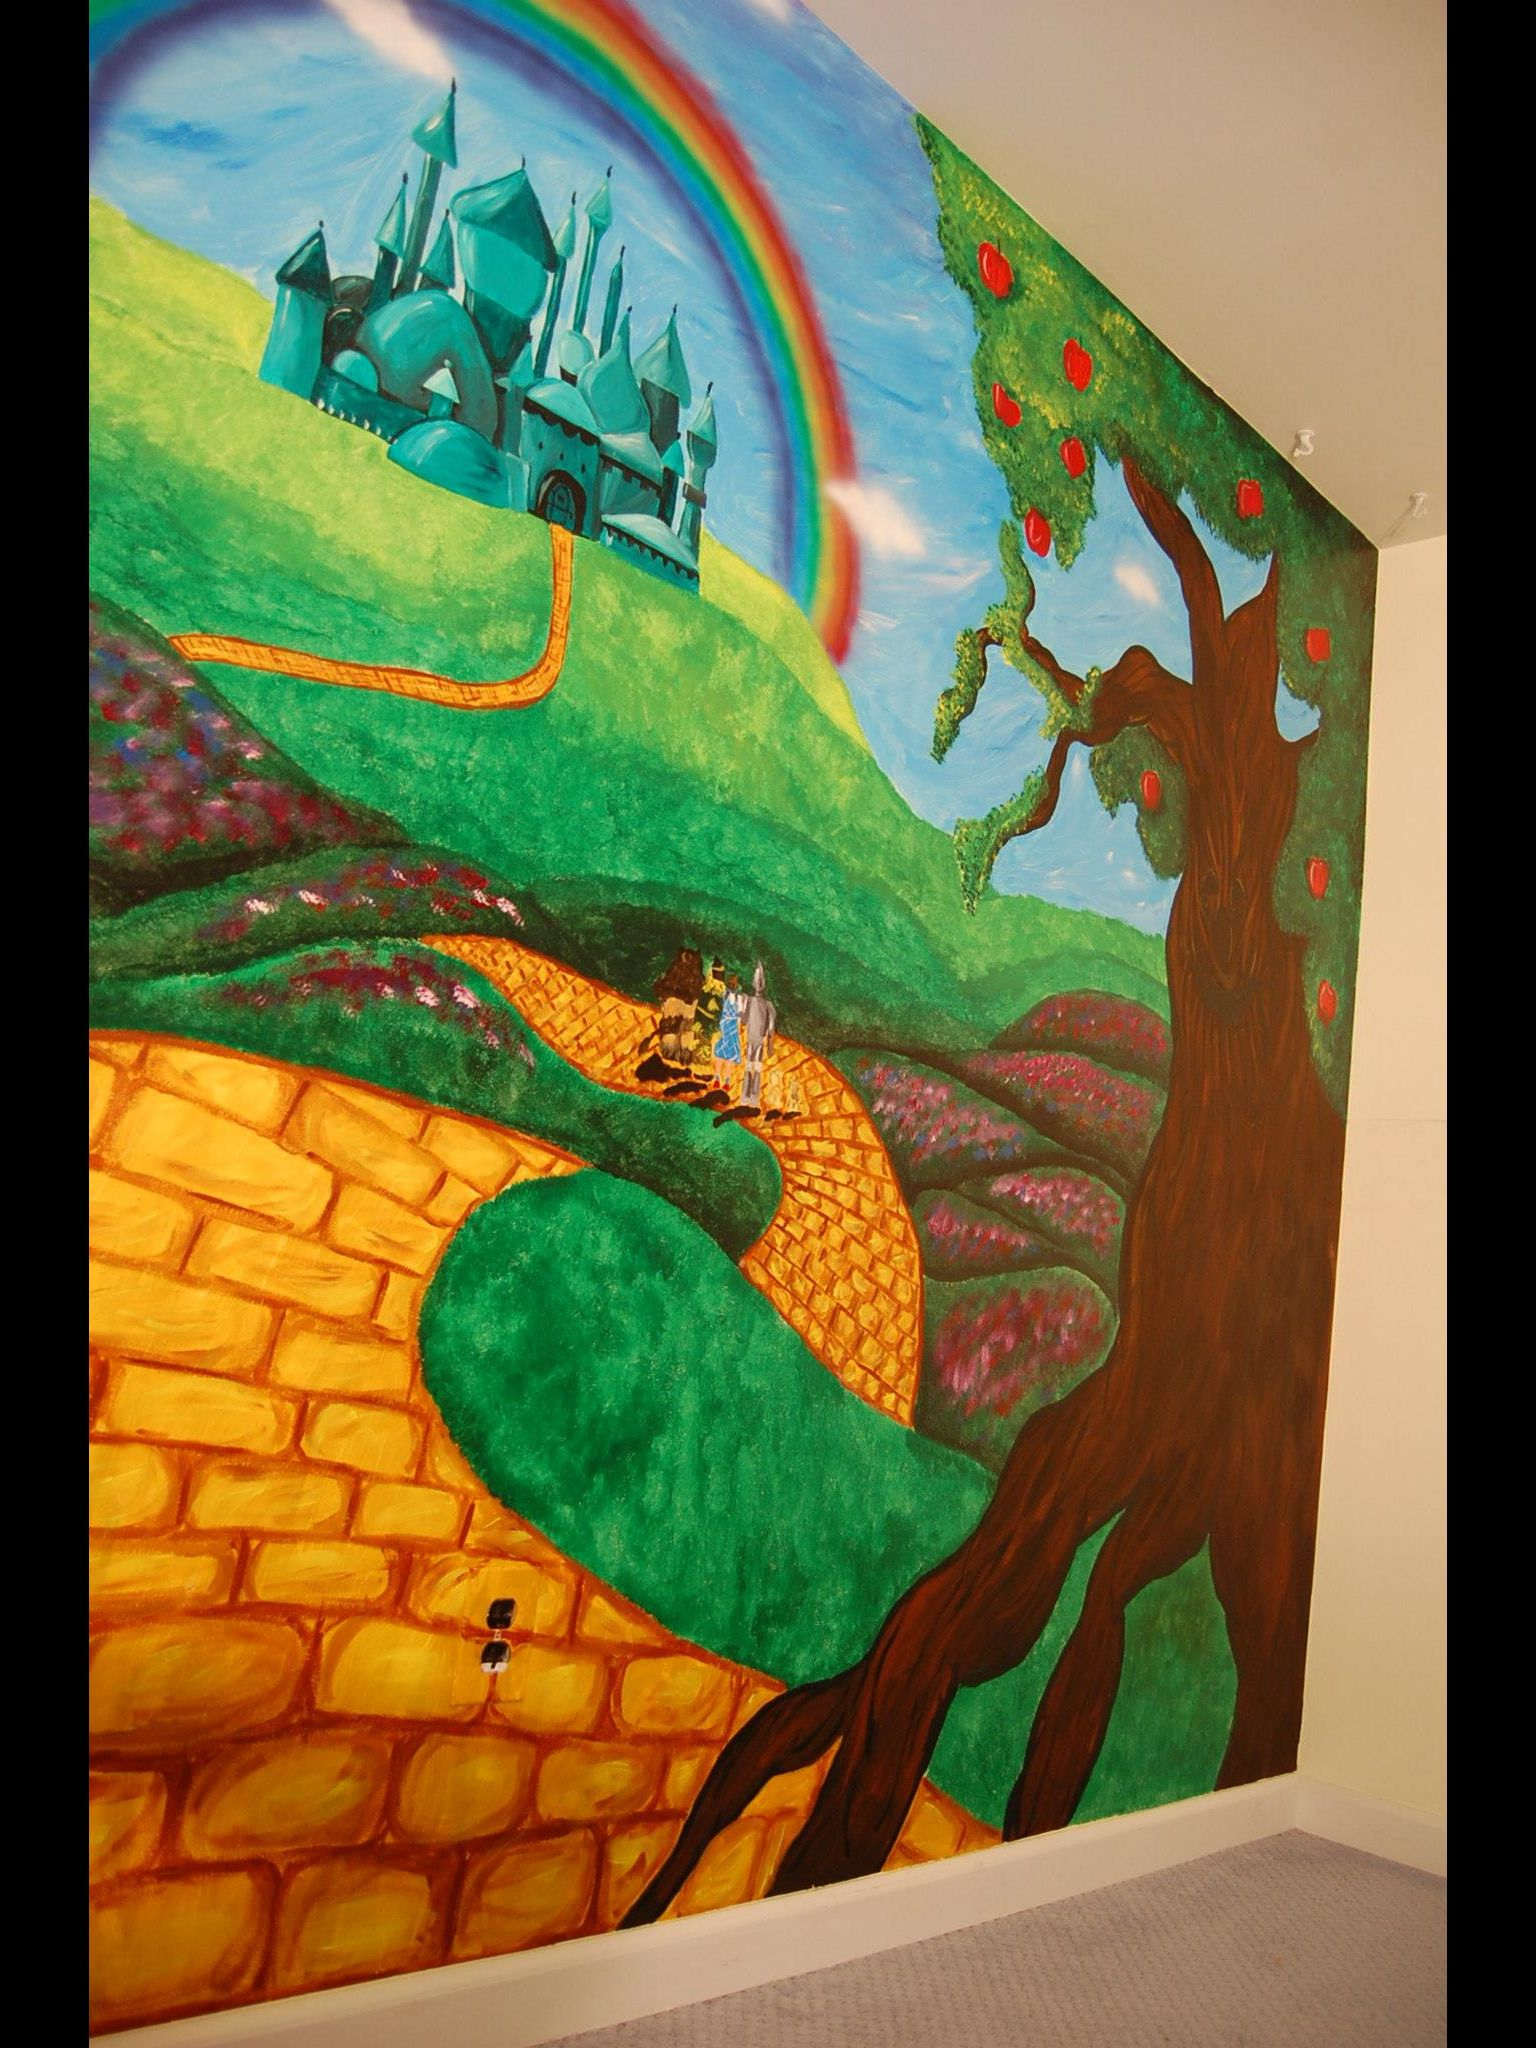 Wizard of oz themed mural by caras creations for a child 39 s for Examples of mural painting